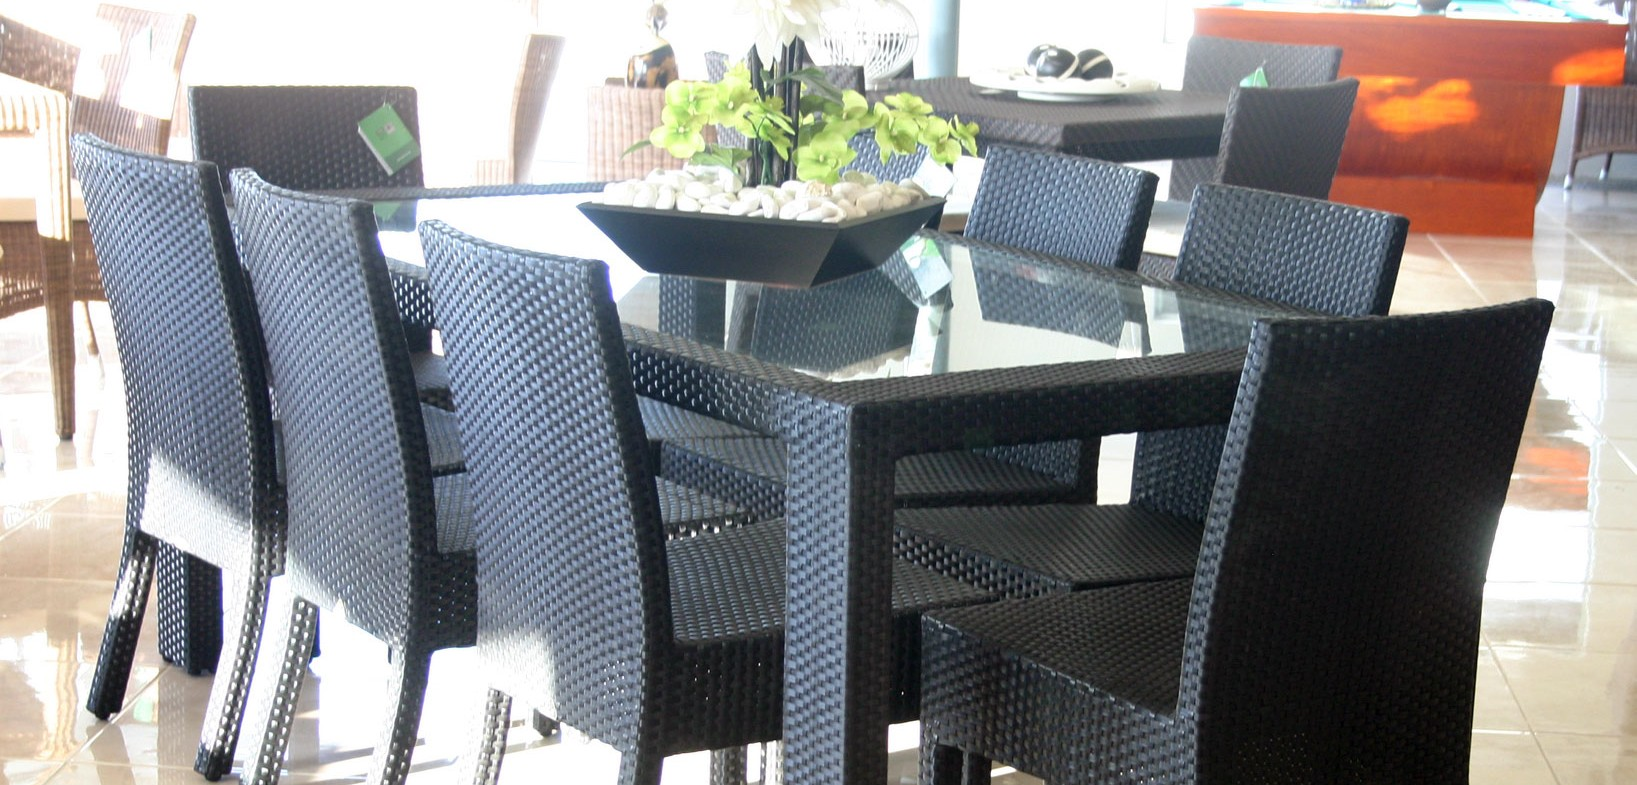 Muebles Vanguardiamuebles Vanguardia  # Muebles Paz To Home